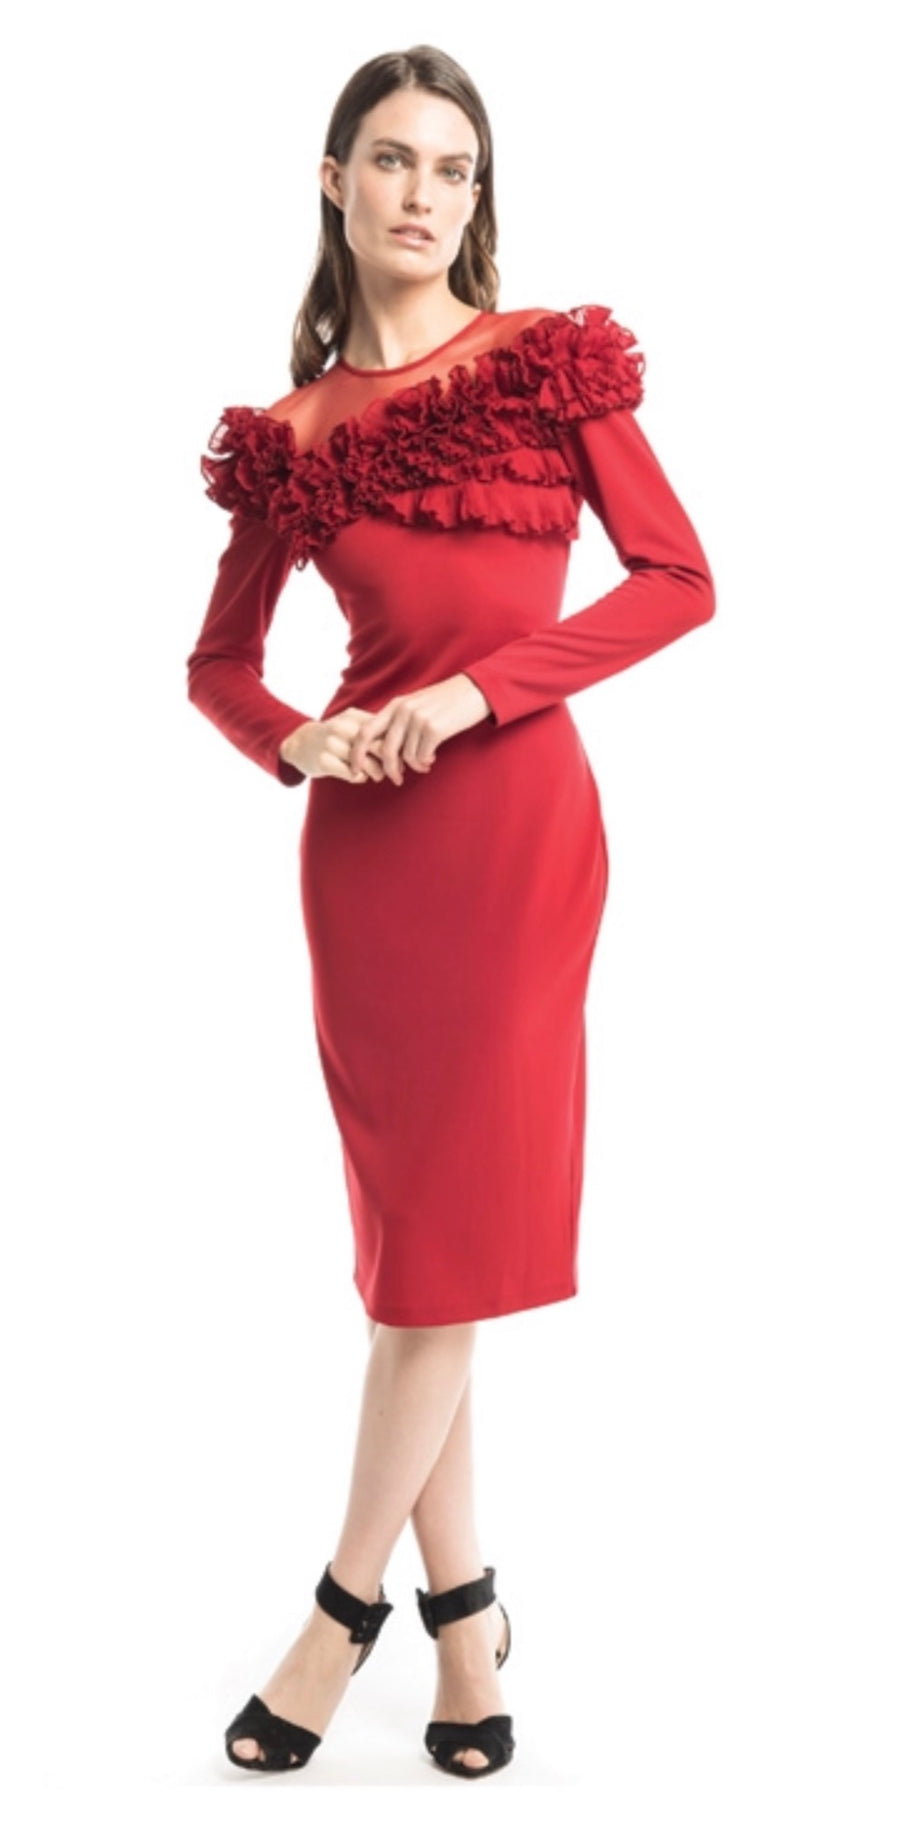 Perfect Ruffled Red Cocktail Dress